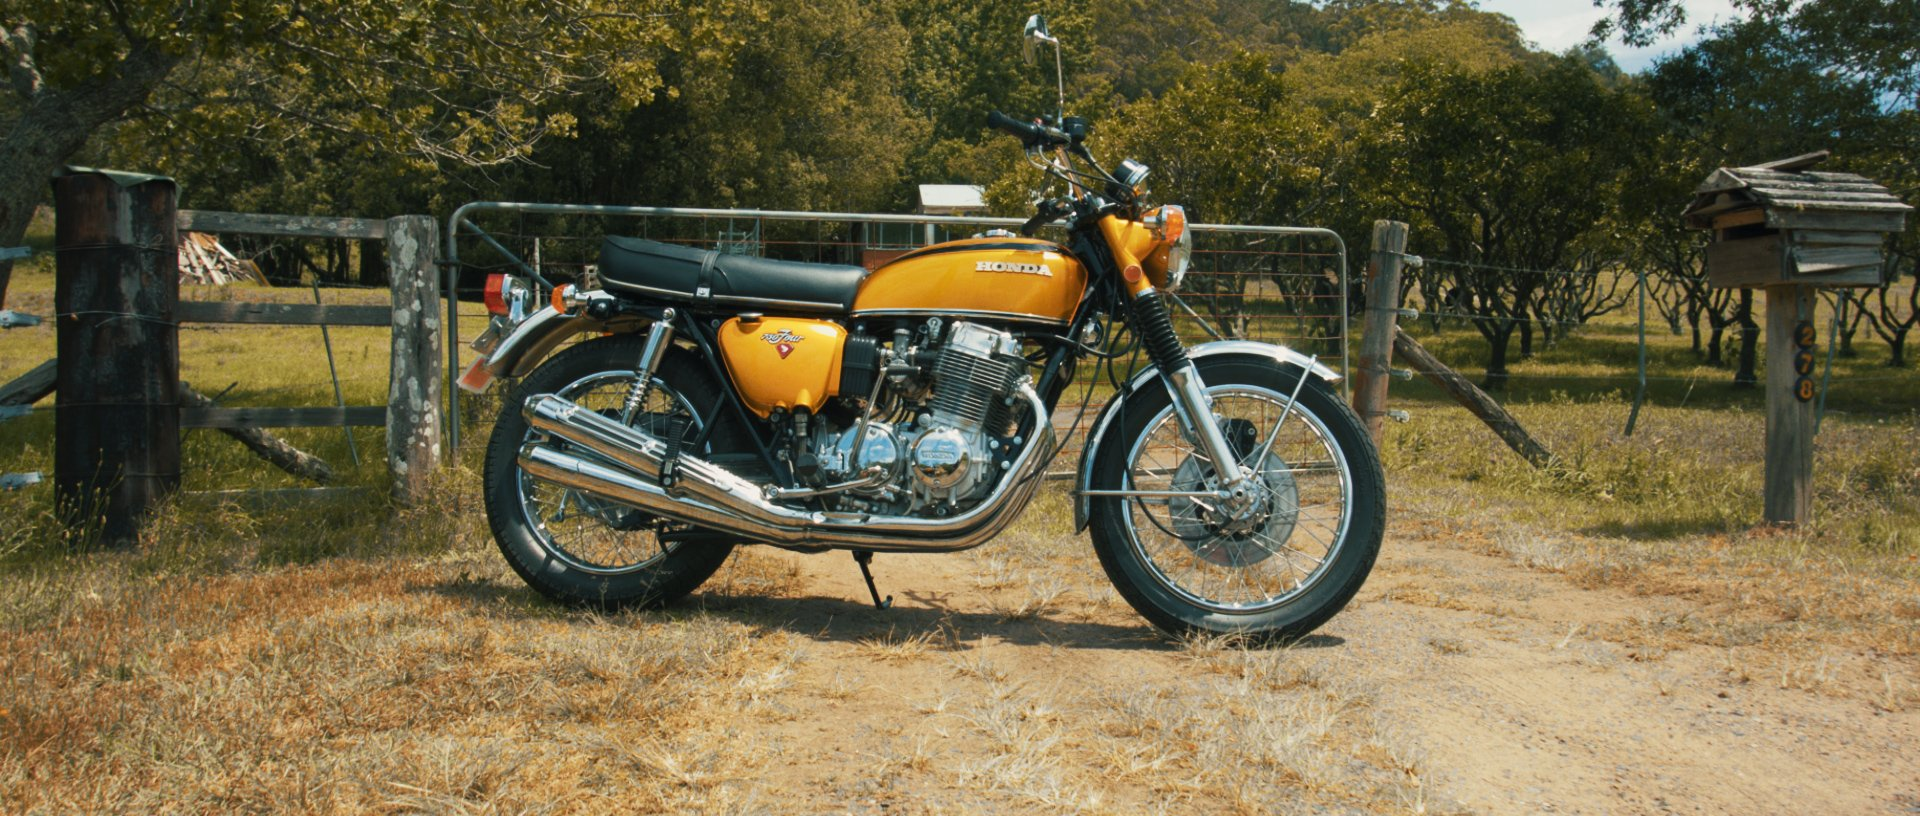 Honda CB750 motorcycle documentary